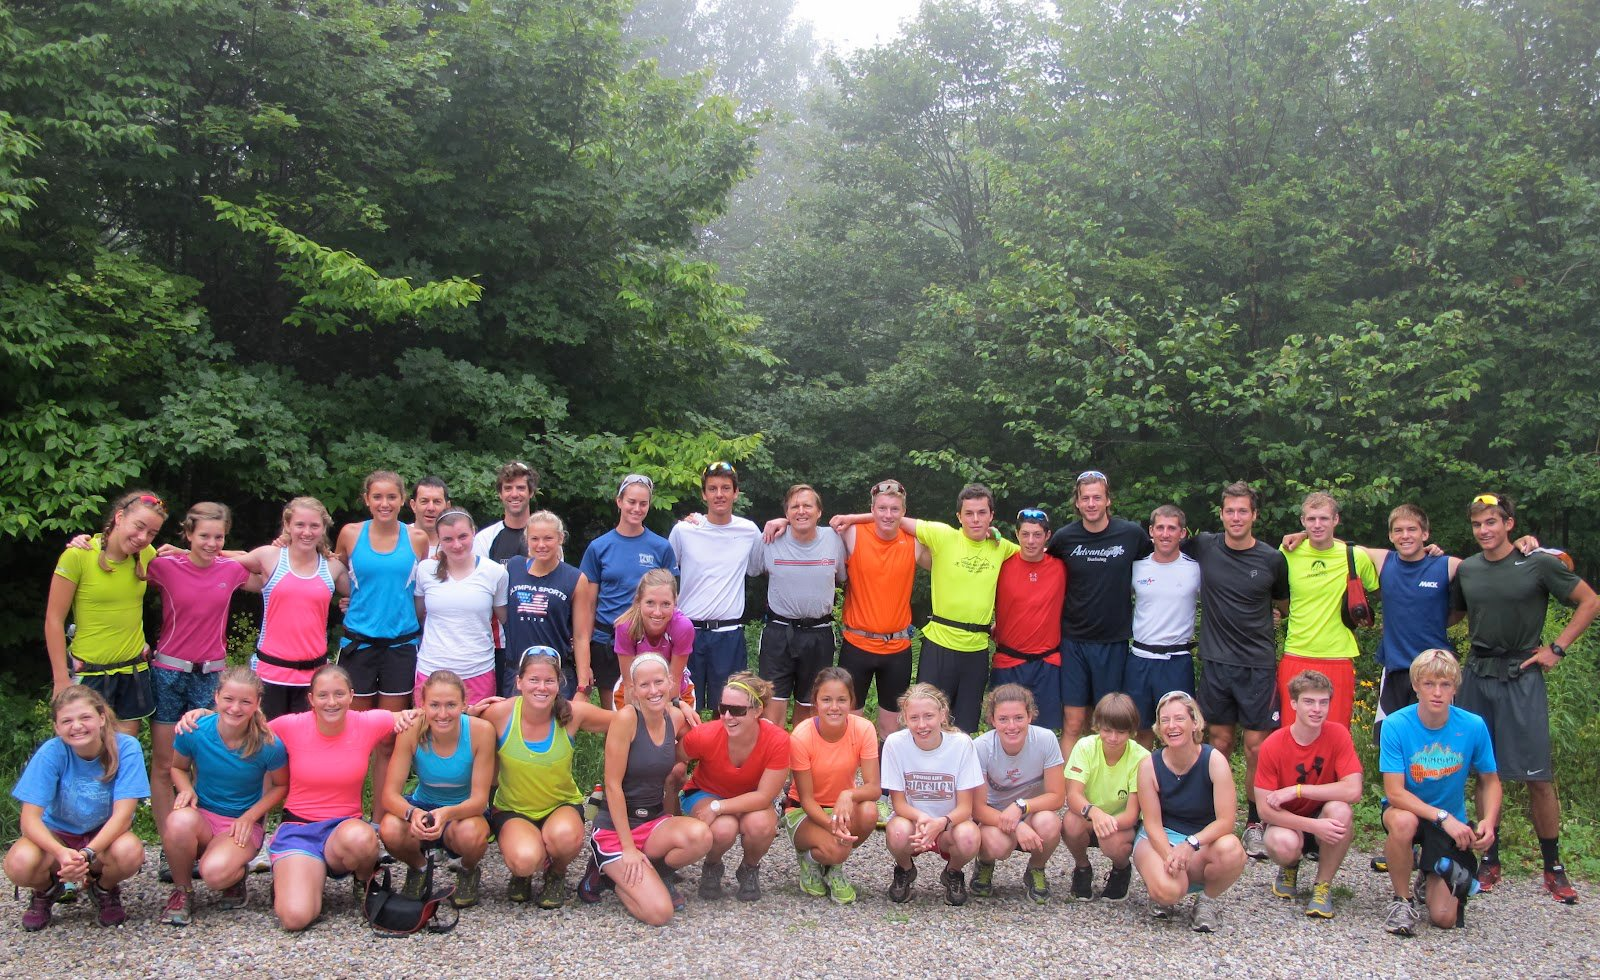 The whole crew before our epic run (Lilly Caldwell photo)